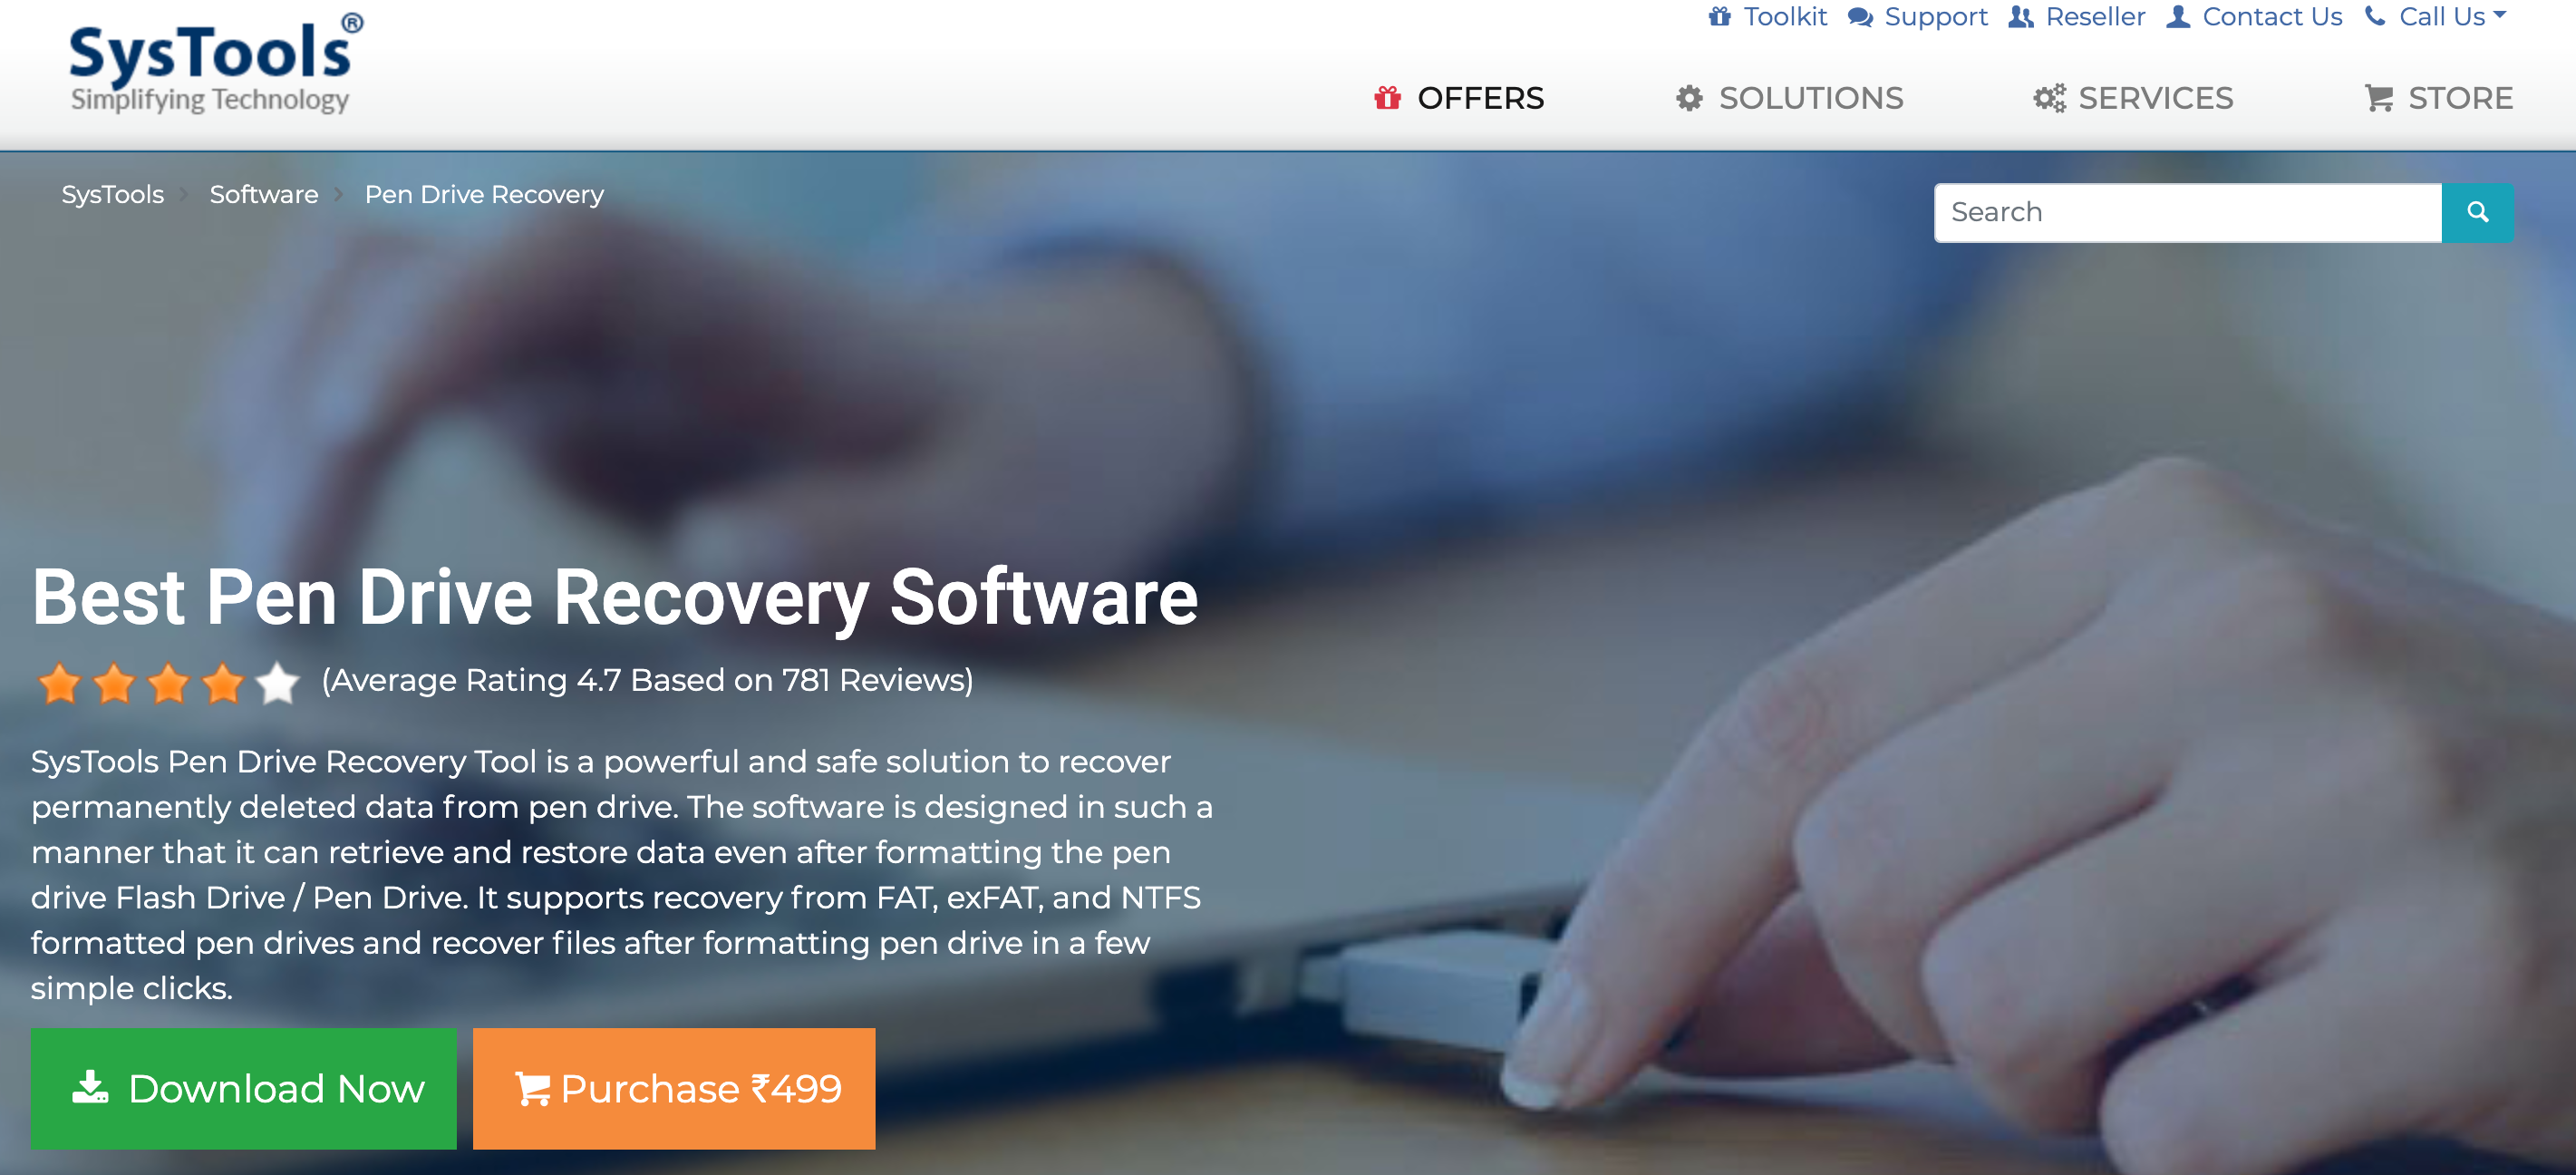 SysTools_ Pen_Drive_Recovery_Tool-